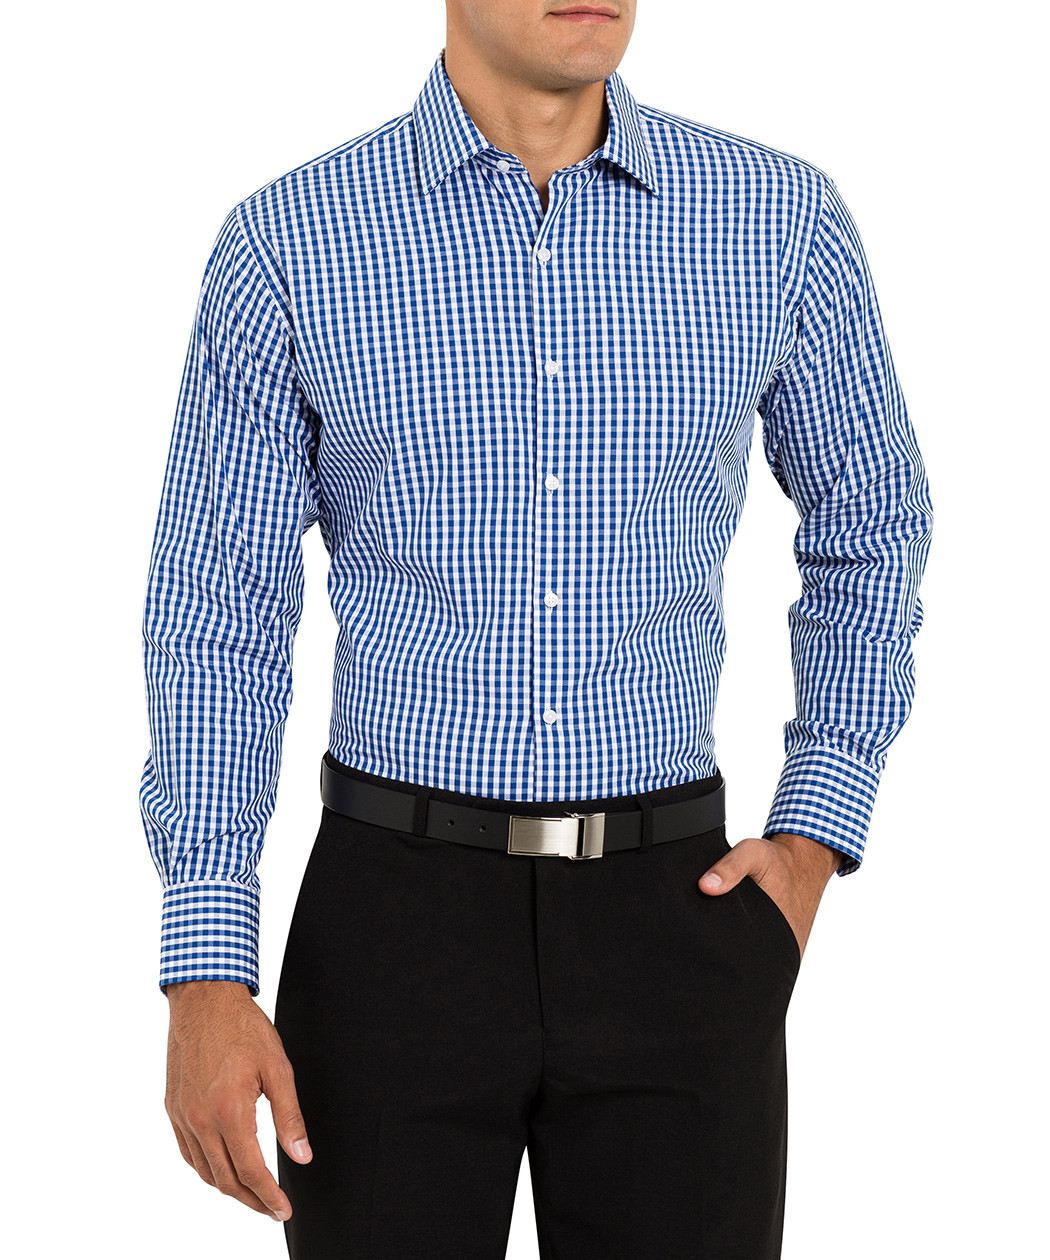 Buy Van Heusen Shirts, Clutch, Belts, Goggles Online in India. Huge range of Apparel, Accessories, Bag at skywestern.ga free shipping* 15 days Return Cash on Delivery.